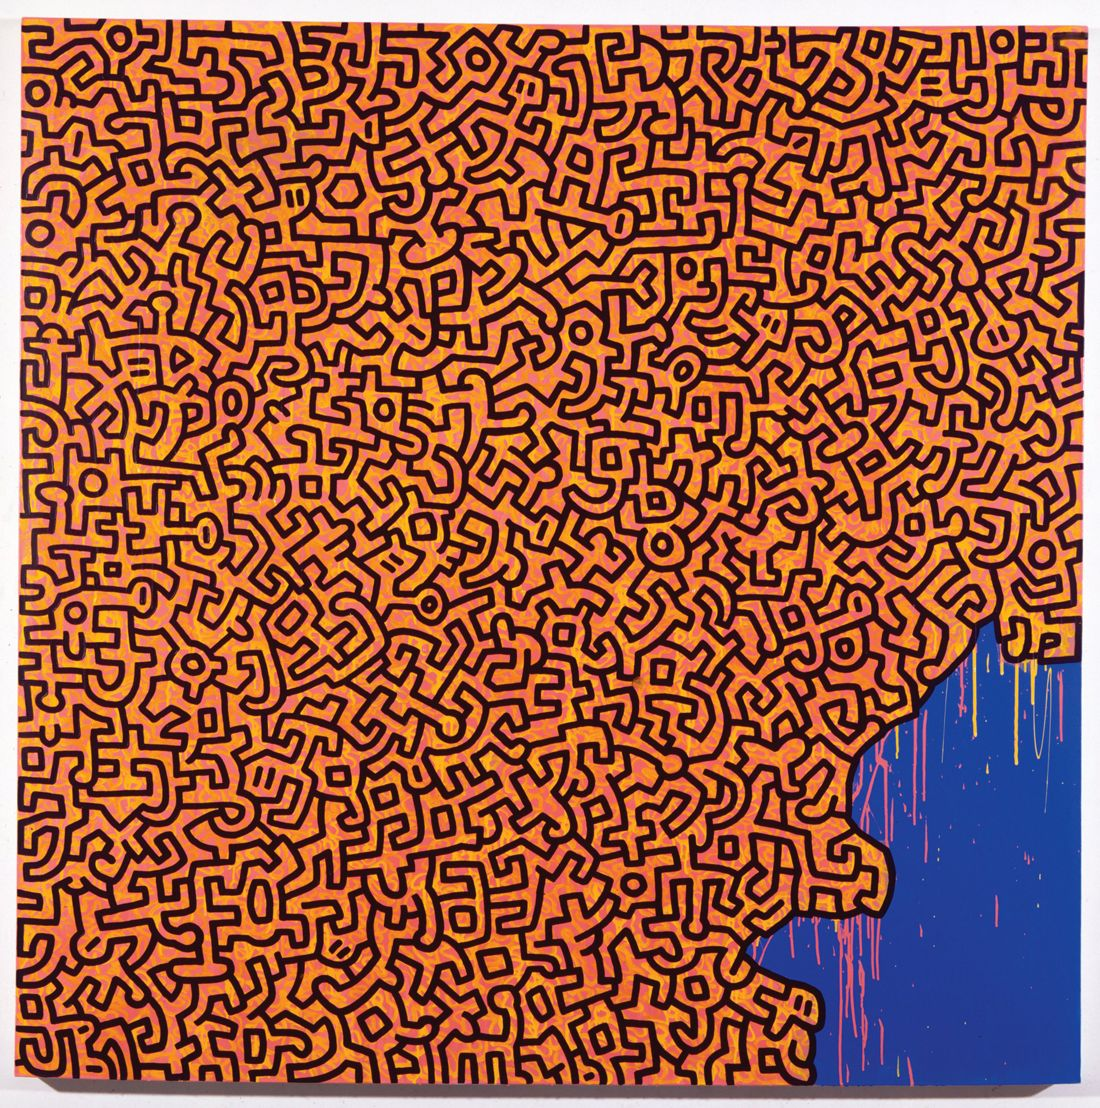 Keith haring the political line keith haring keith haring art keith haring the political line reviewsmspy